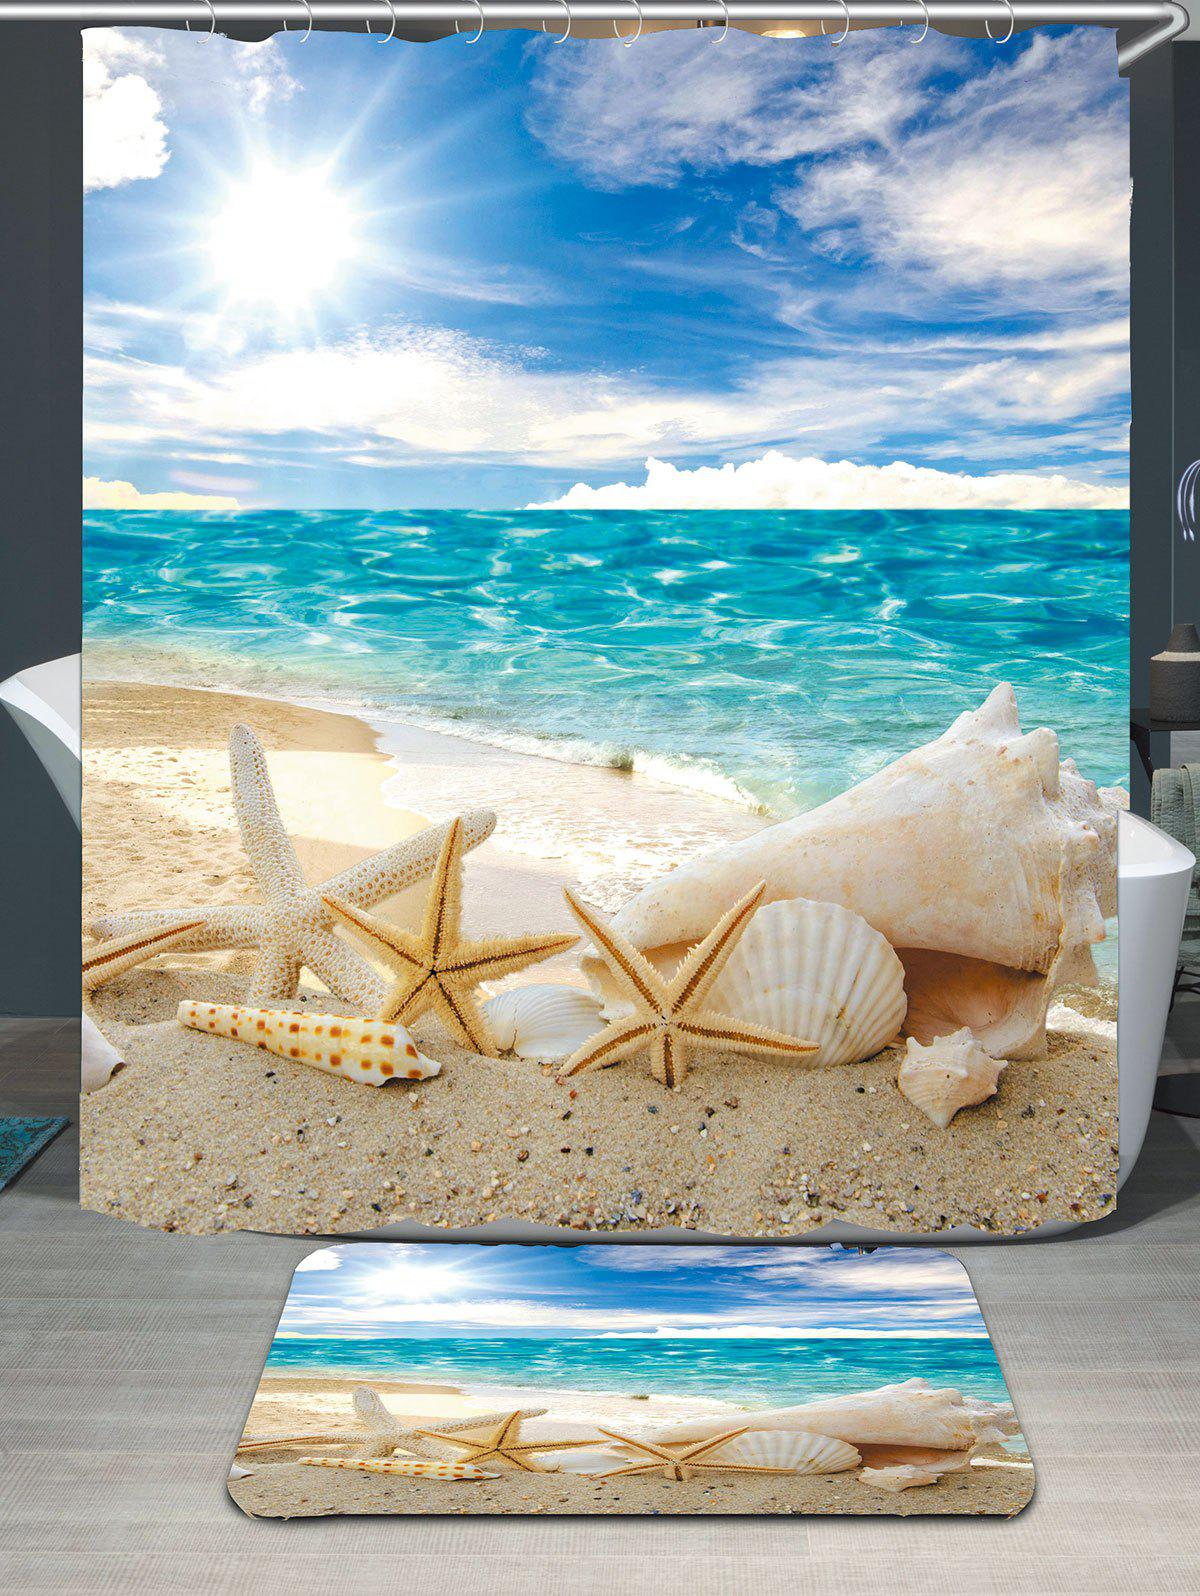 Fashion Conch Shells Beach Waterproof Shower Curtain Rug Set